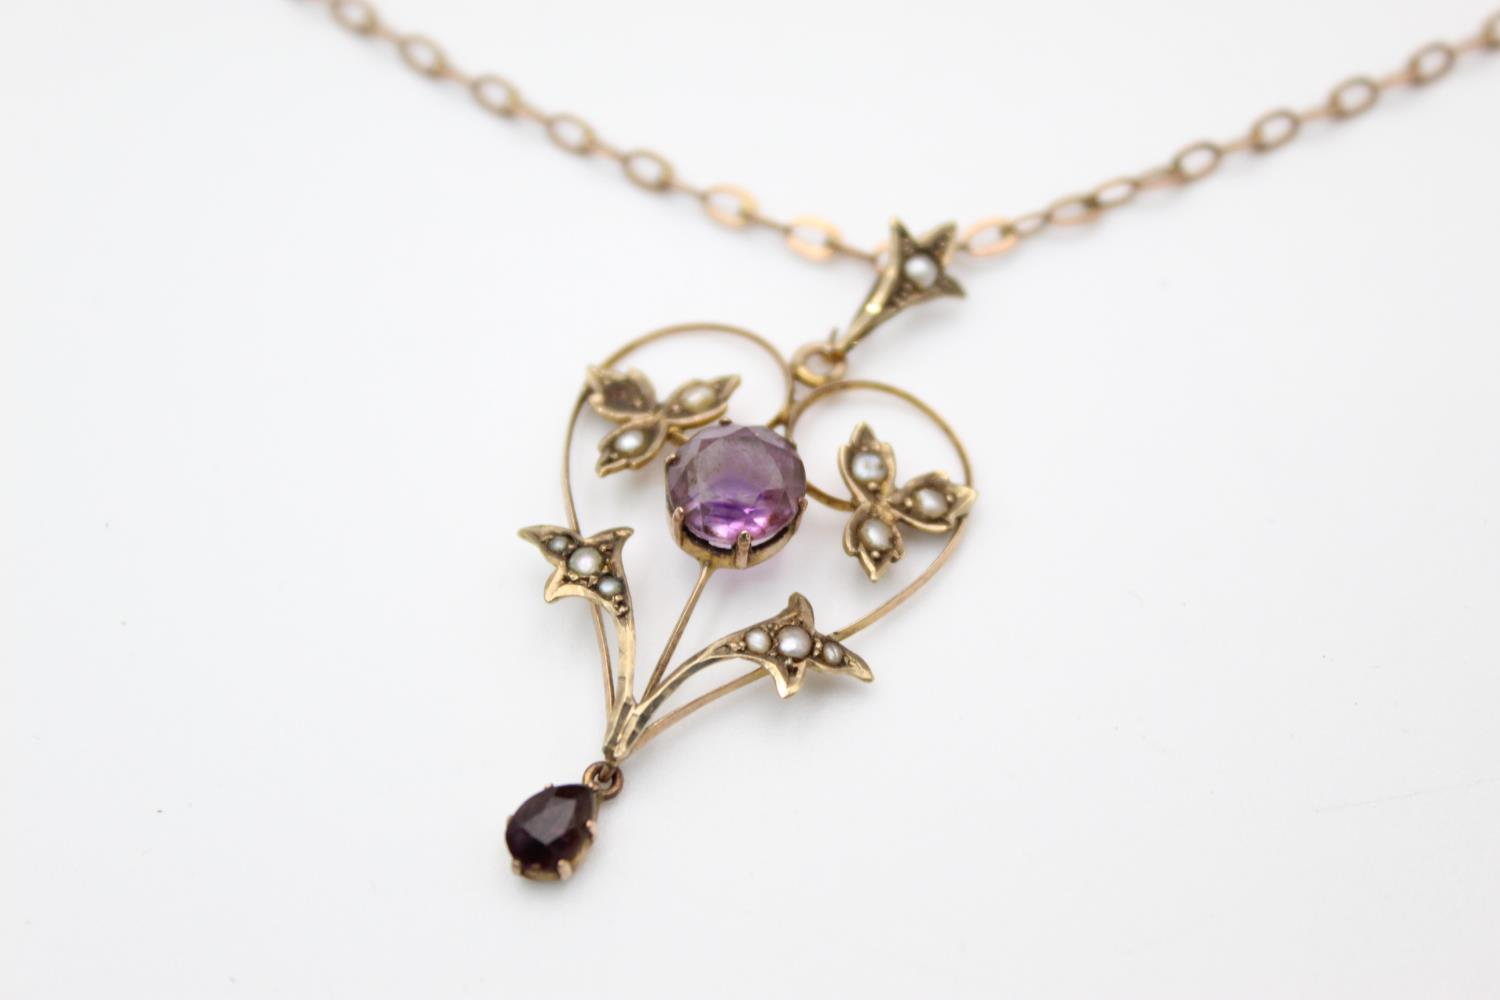 Antique 9ct Gold amethyst & seed pearl pendant necklace *one seed pearl missing 3.7g - Image 3 of 5